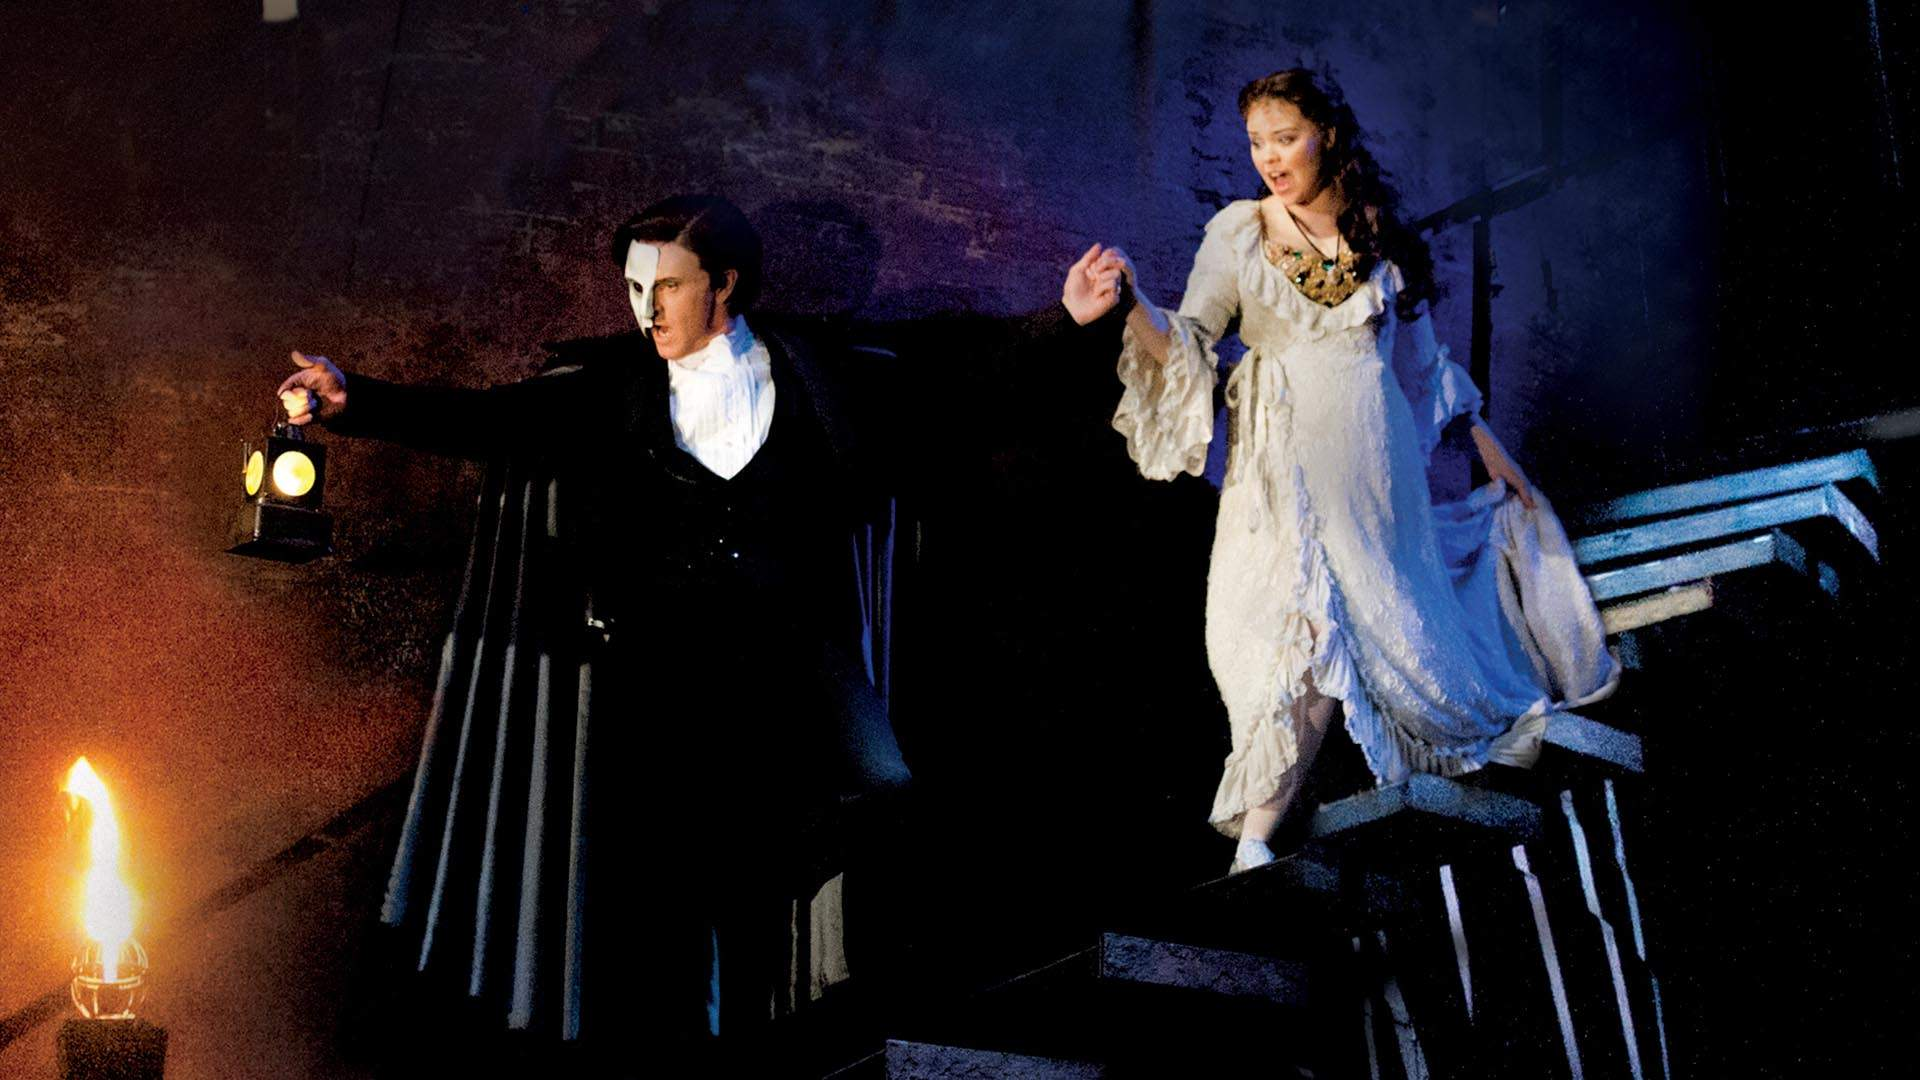 Andrew Lloyd Webber's Tony-Winning Musical 'The Phantom of the Opera' Is Coming to Melbourne